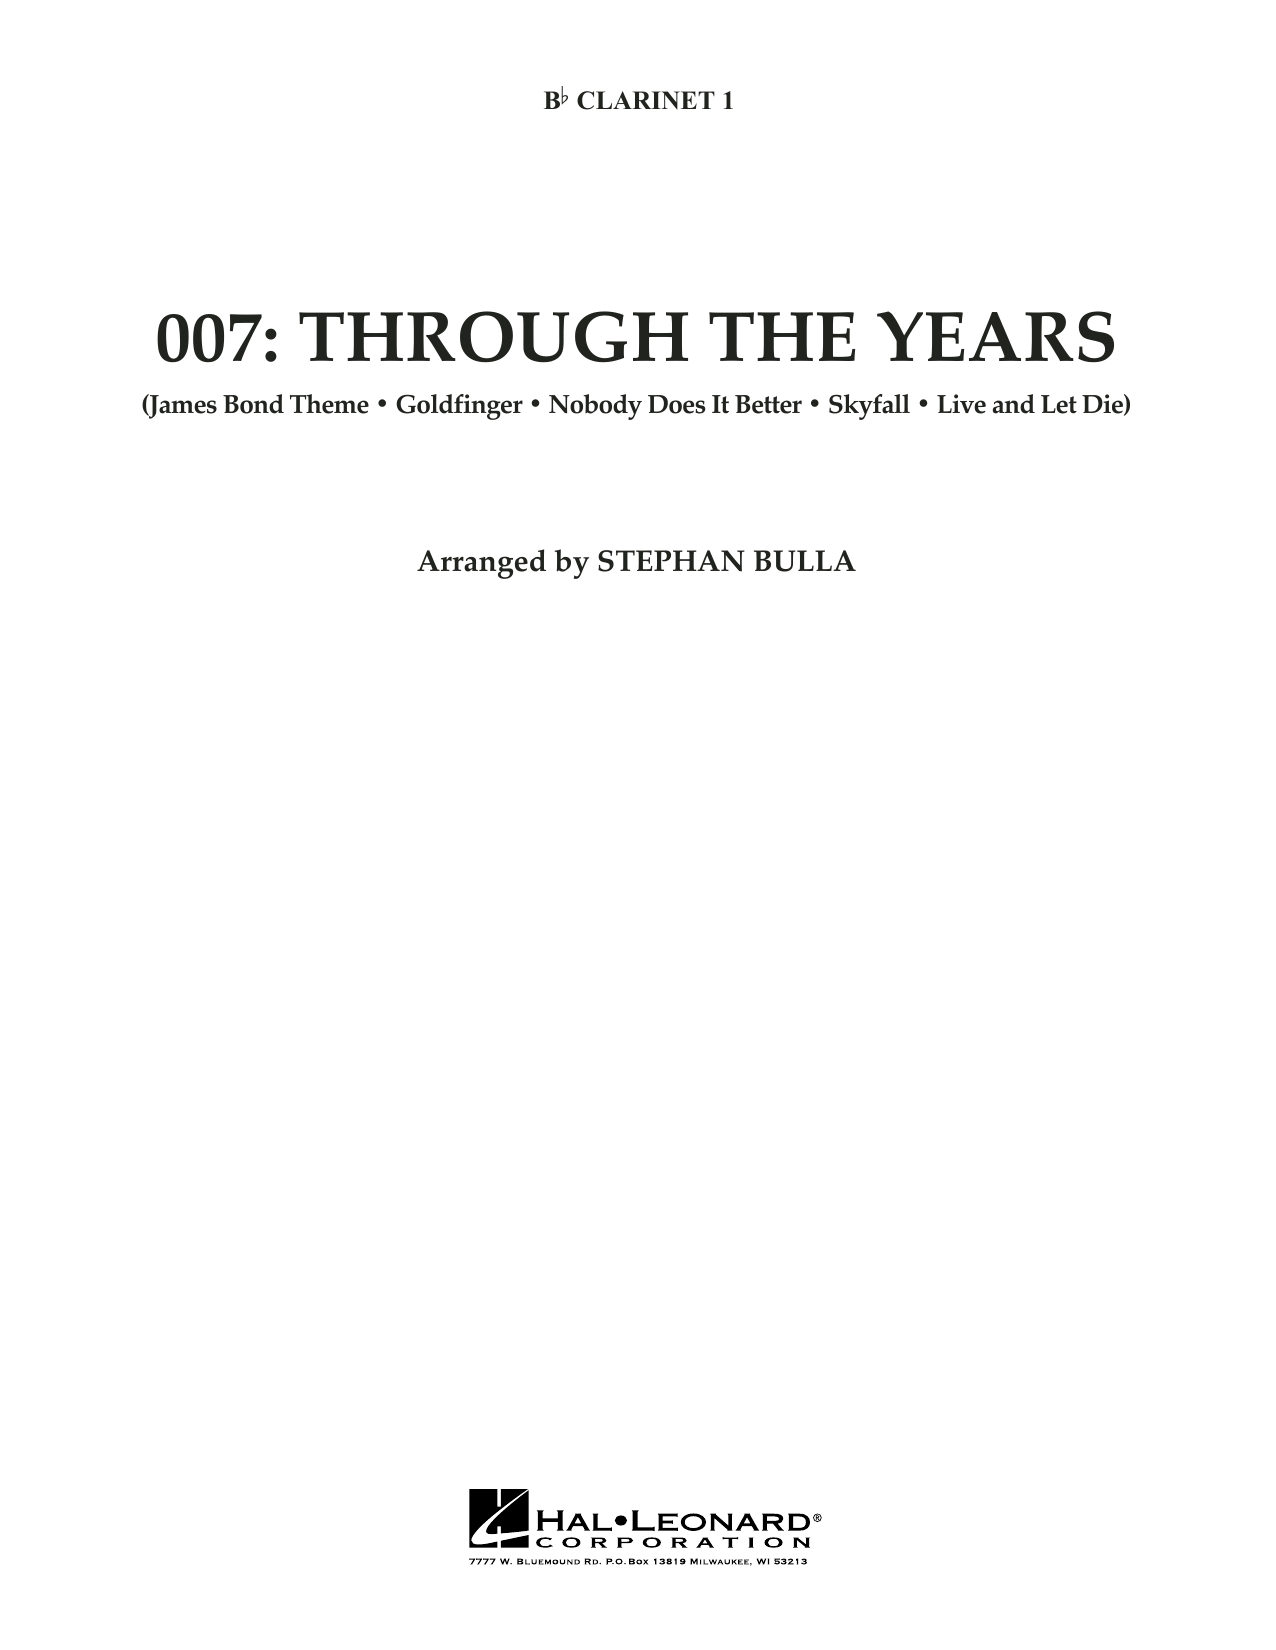 007: Through The Years - Bb Clarinet 1 (Orchestra)